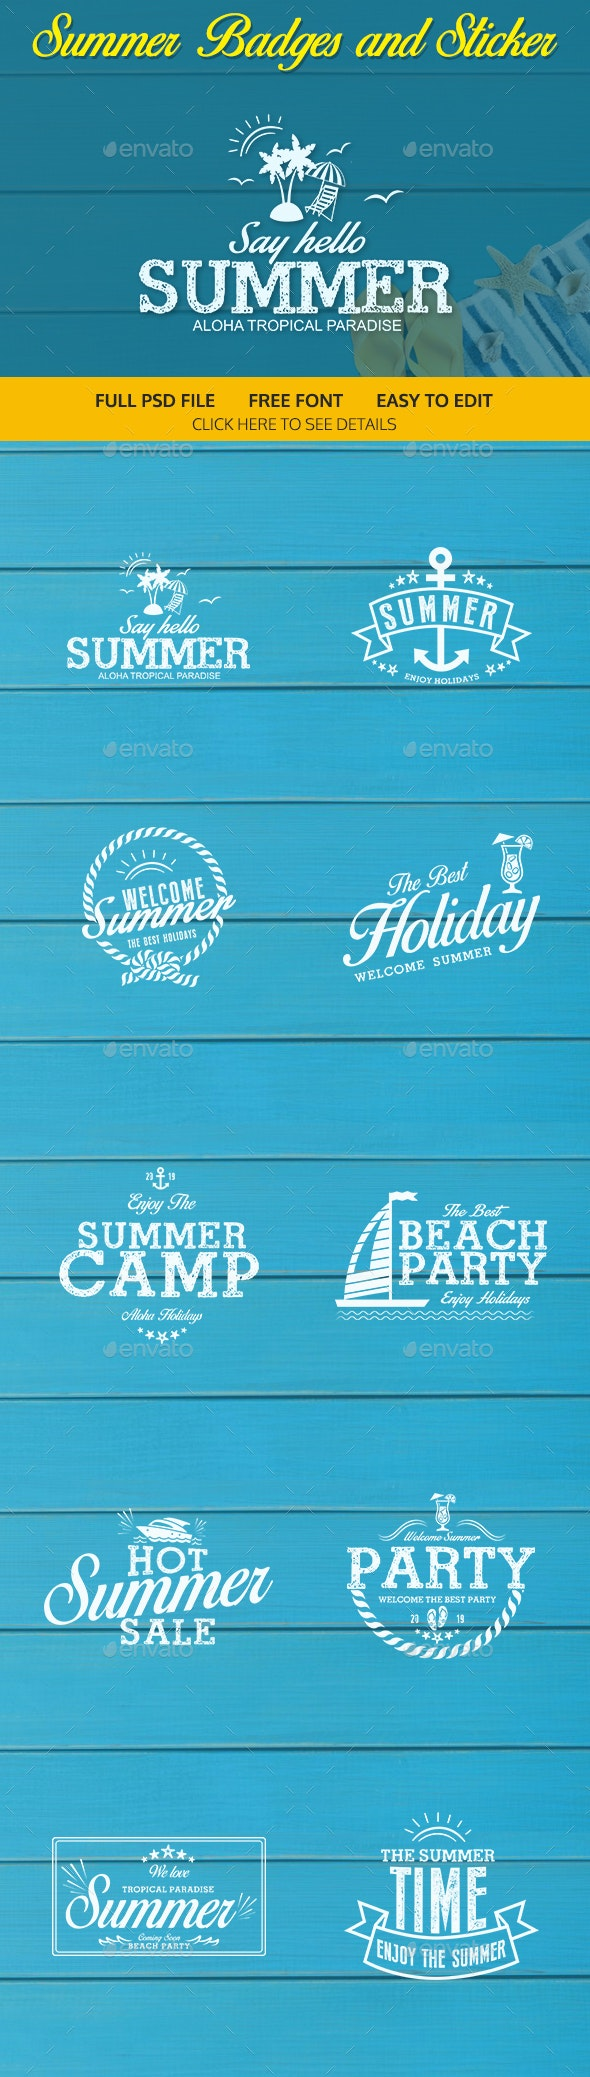 Summer Badges and Sticker - Badges & Stickers Web Elements